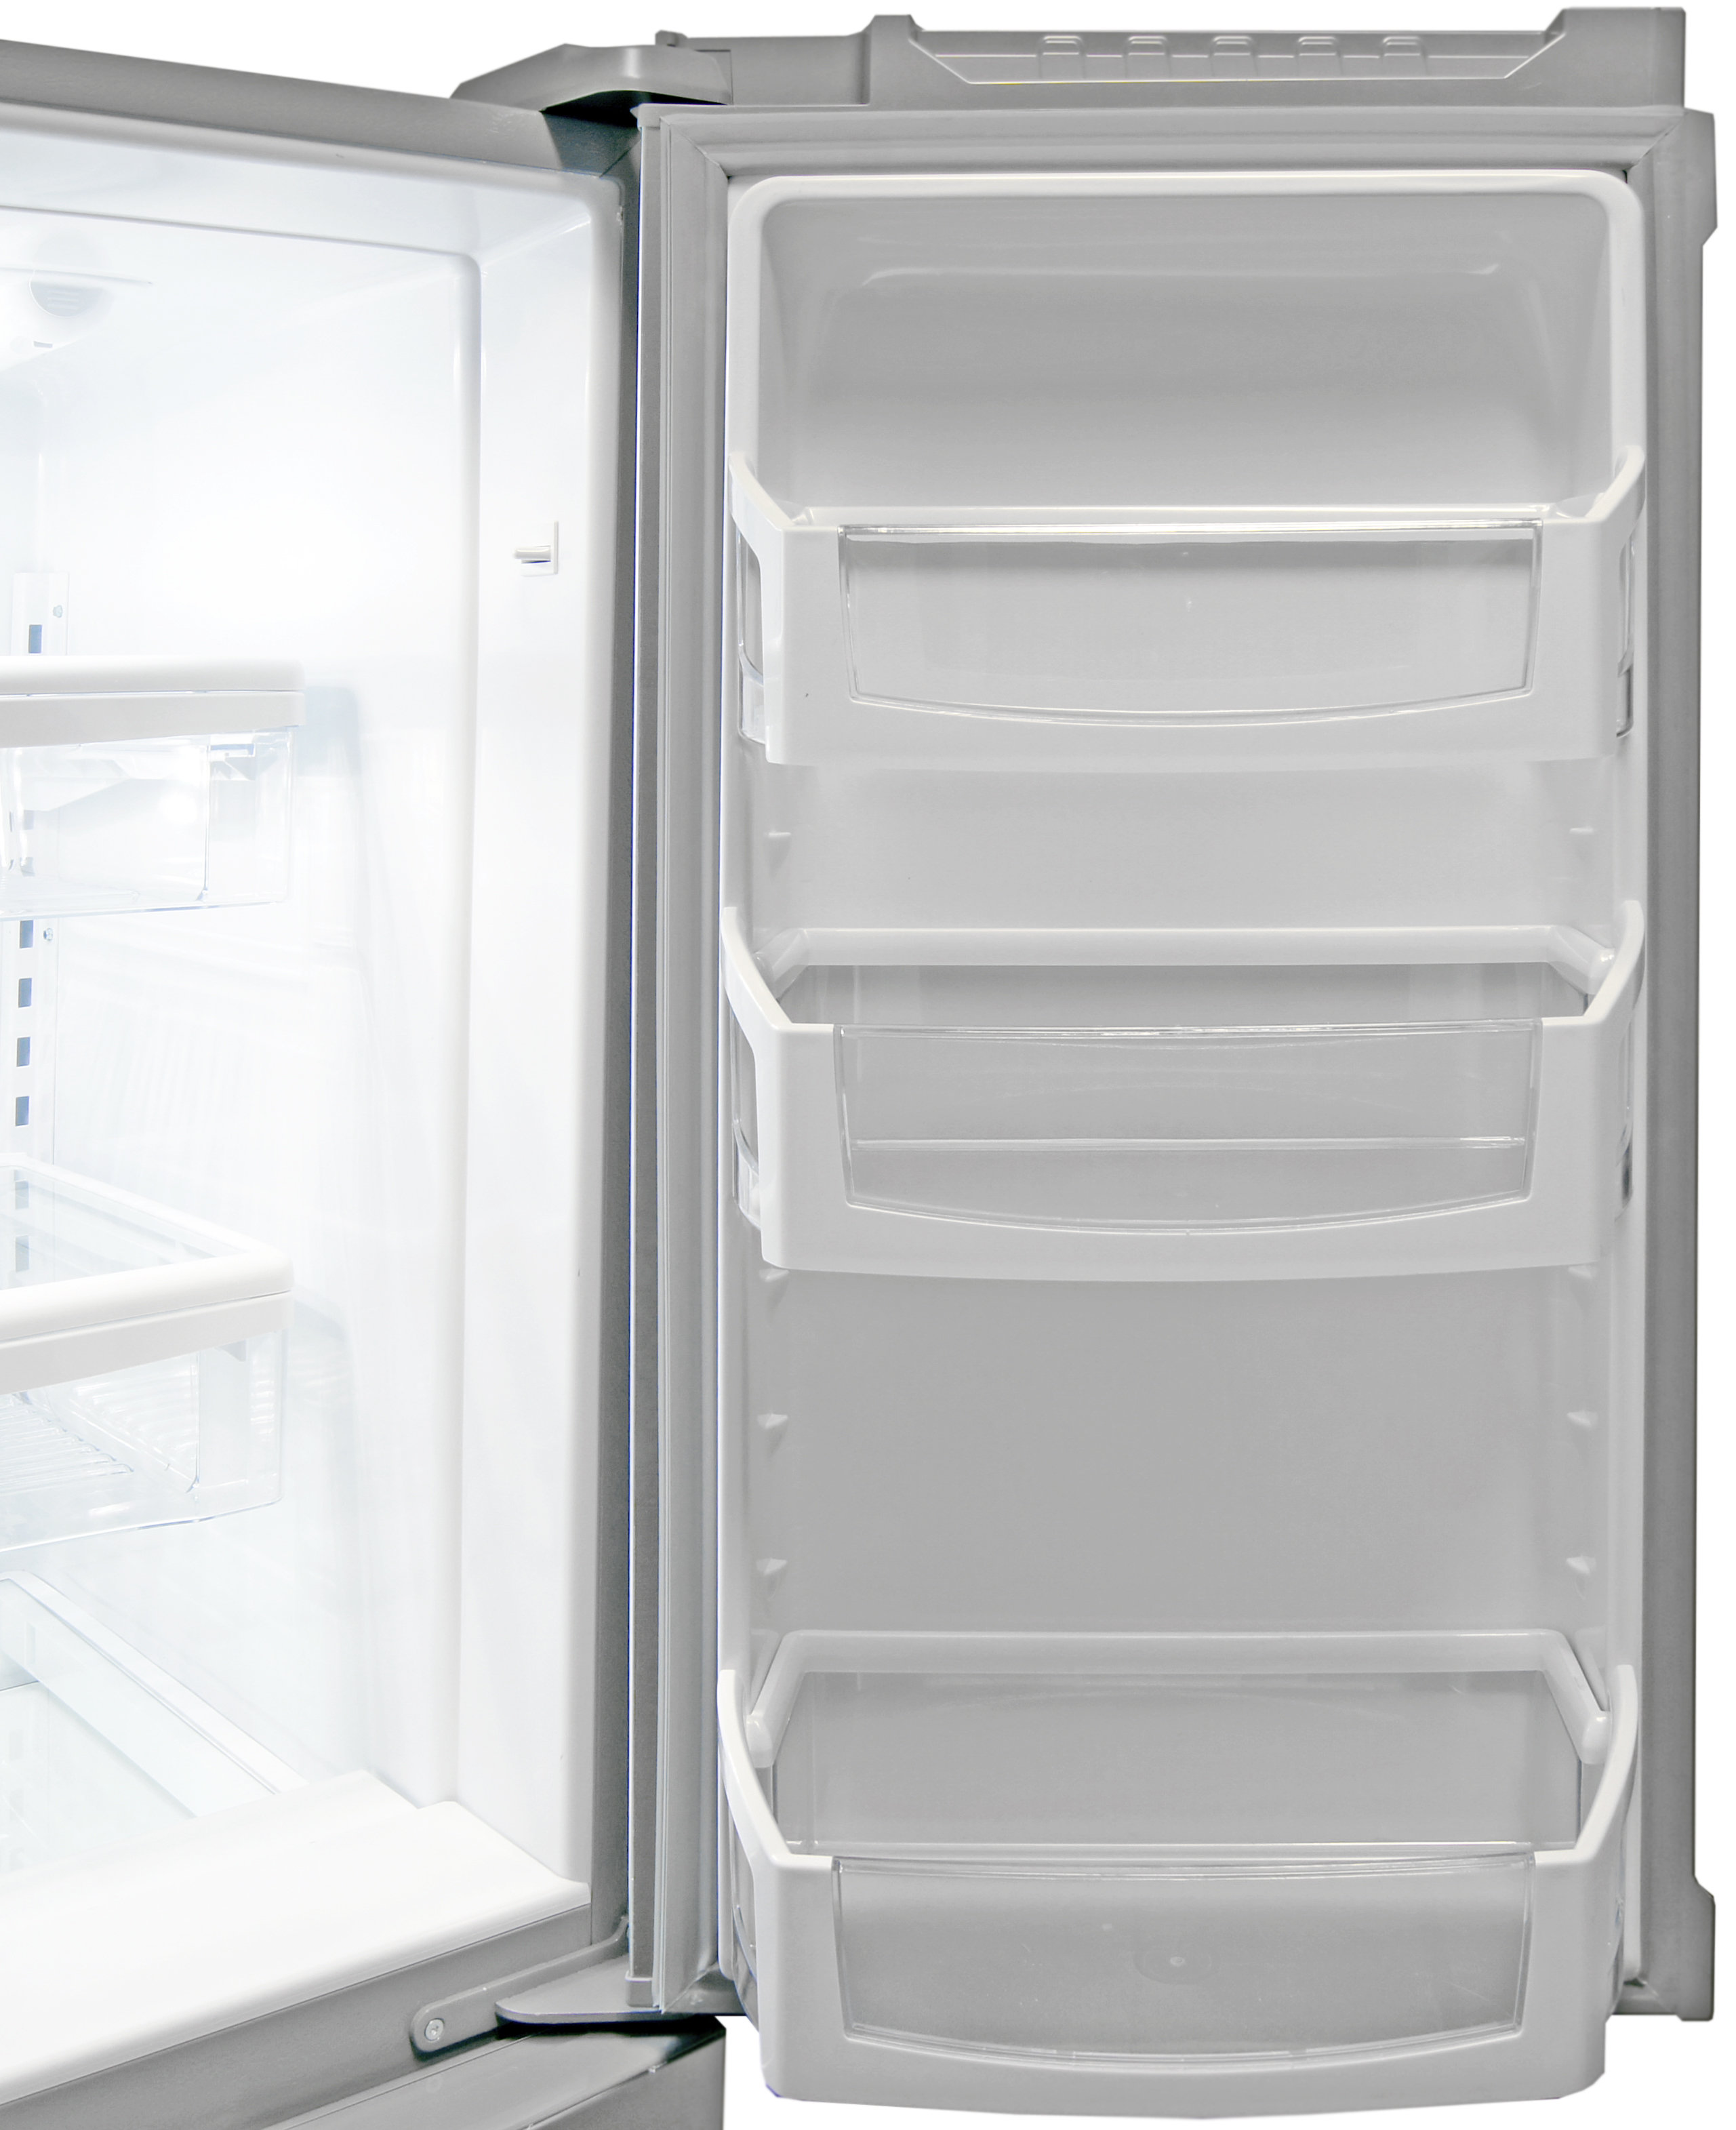 Gallon-sized bucket storage can be found on the Whirlpool WRX735SDBM's right fridge door.